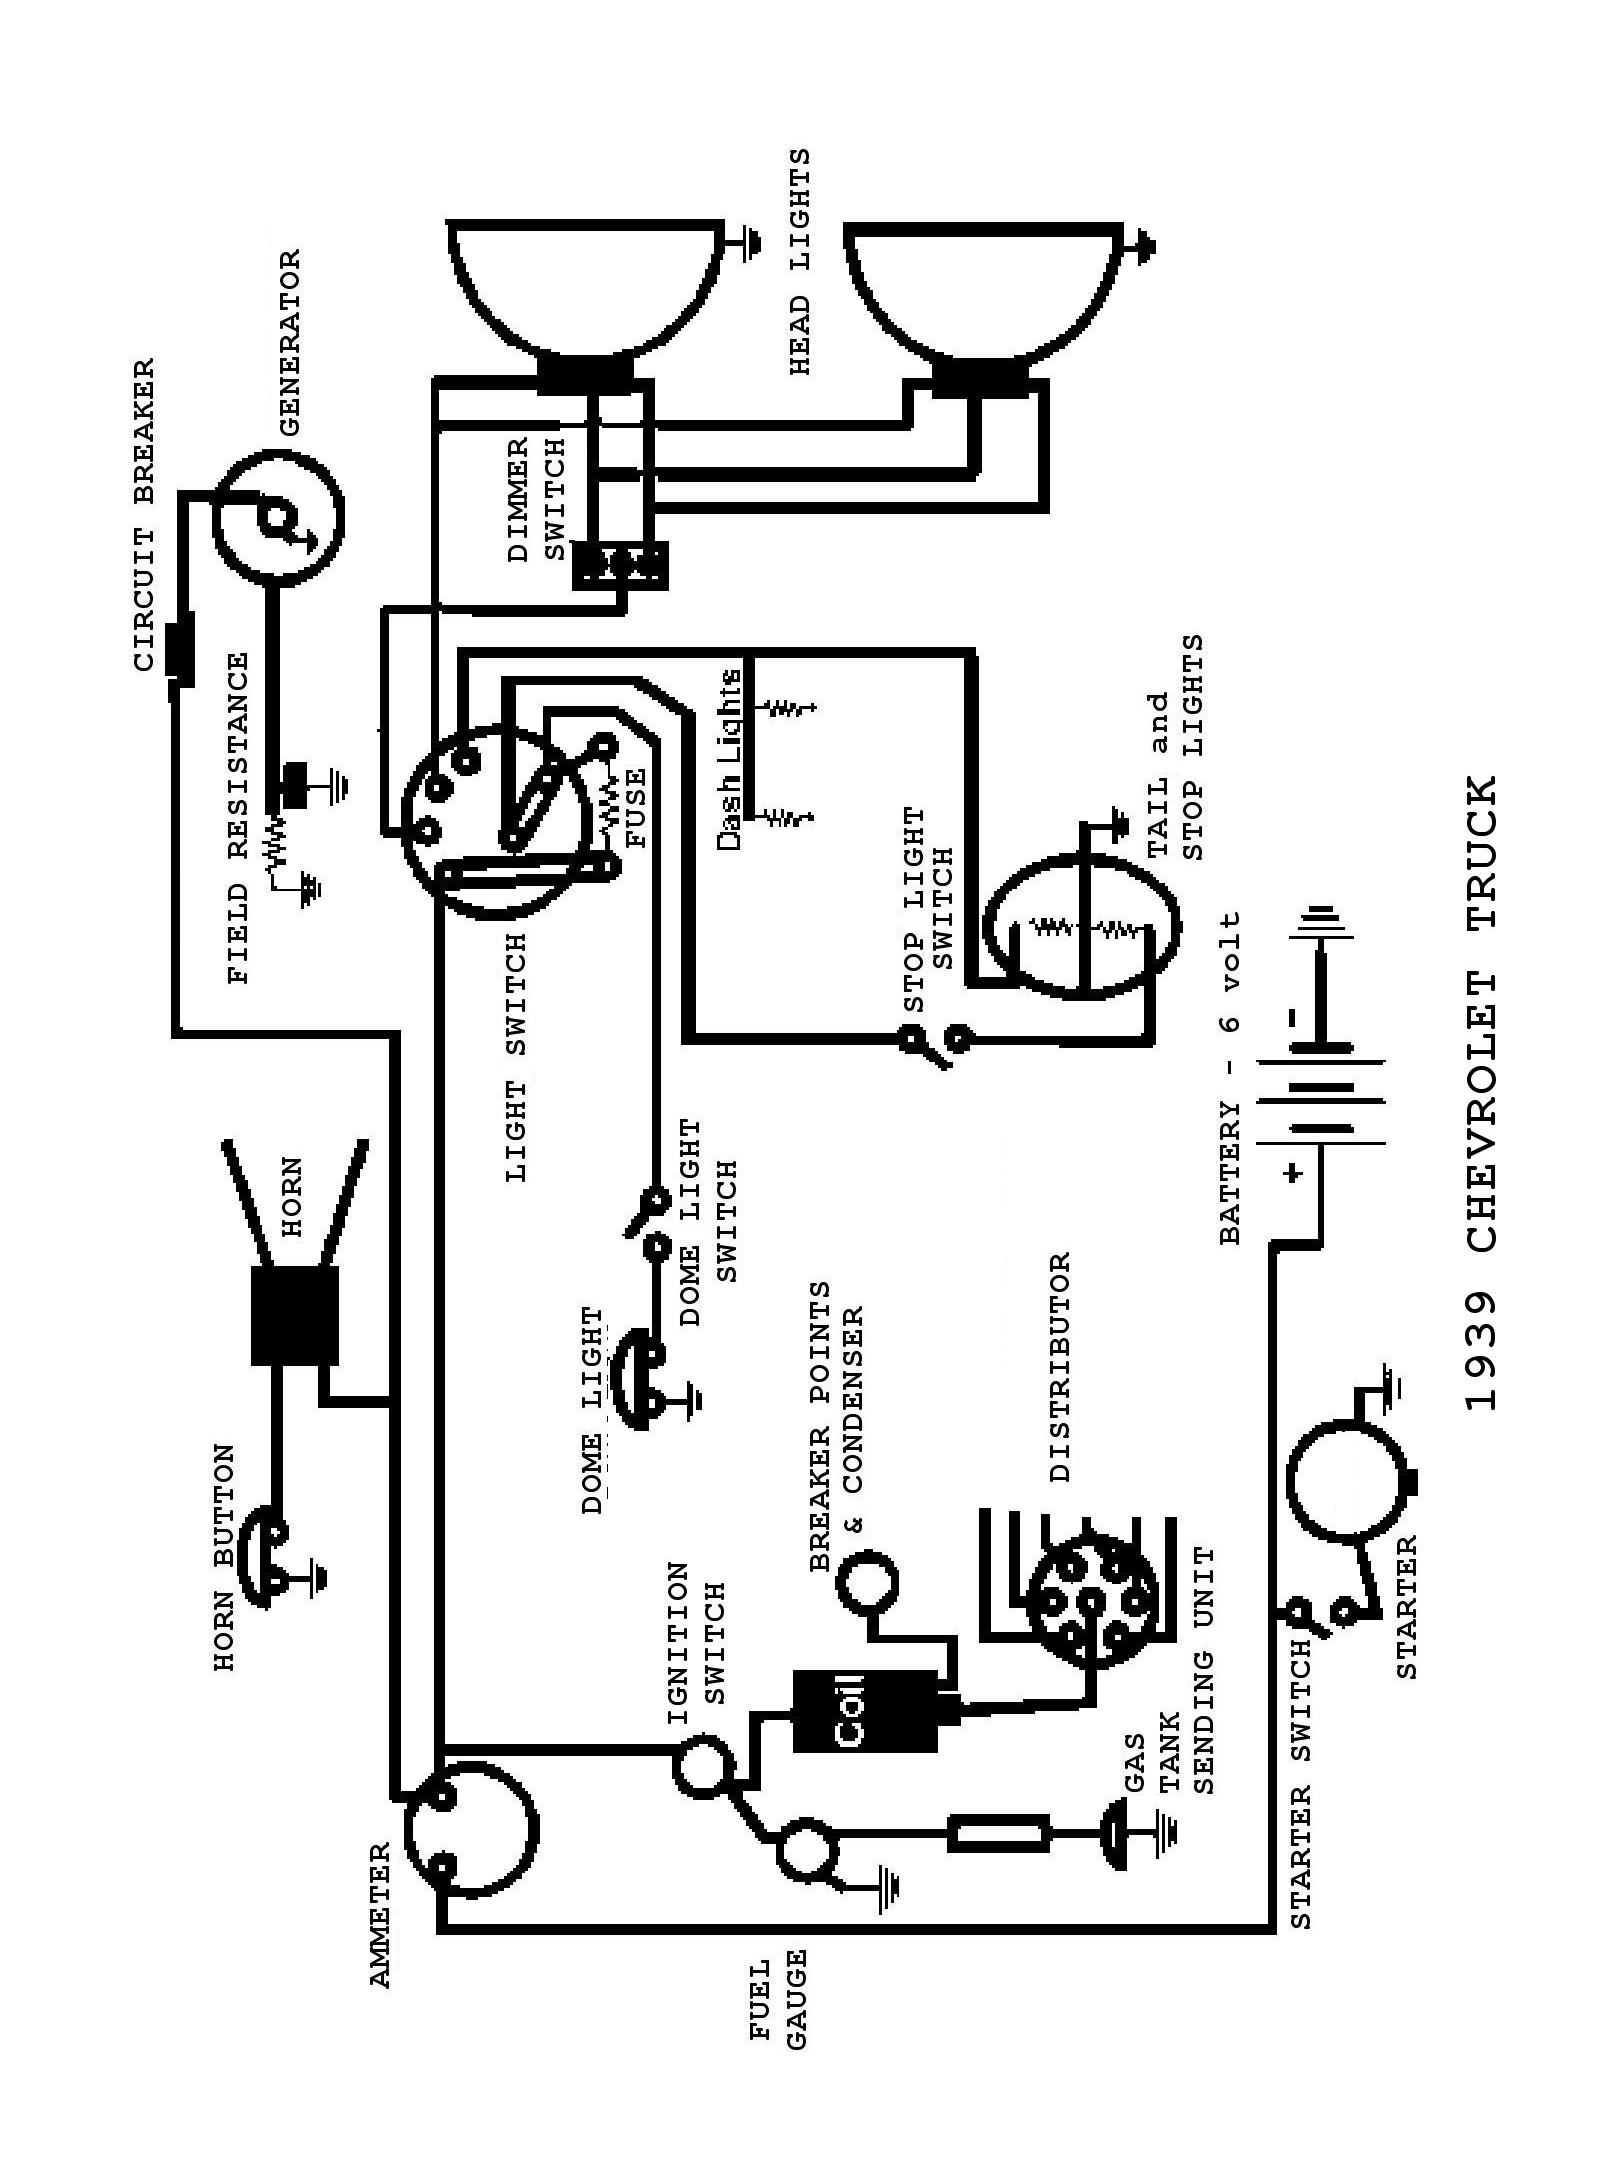 39truck ihc truck wiring diagrams mazda truck wiring diagrams \u2022 free  at highcare.asia